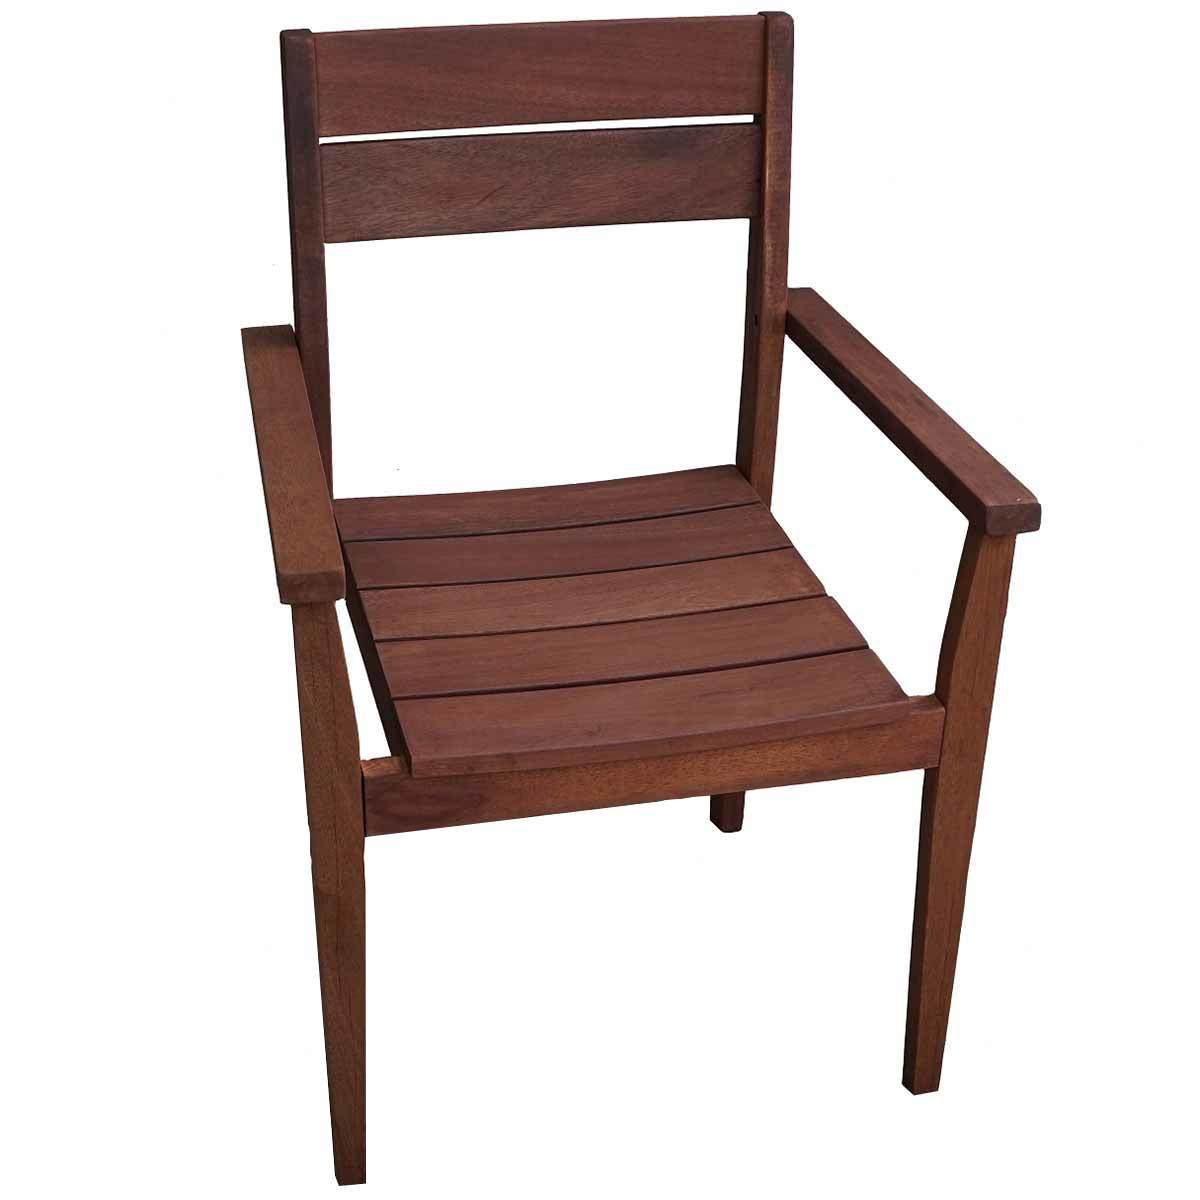 Merveilleux SKU #THEV1083 Stackable Outdoor Wooden Armchair Is Also Sometimes Listed  Under The Following Manufacturer Numbers: SAC 086